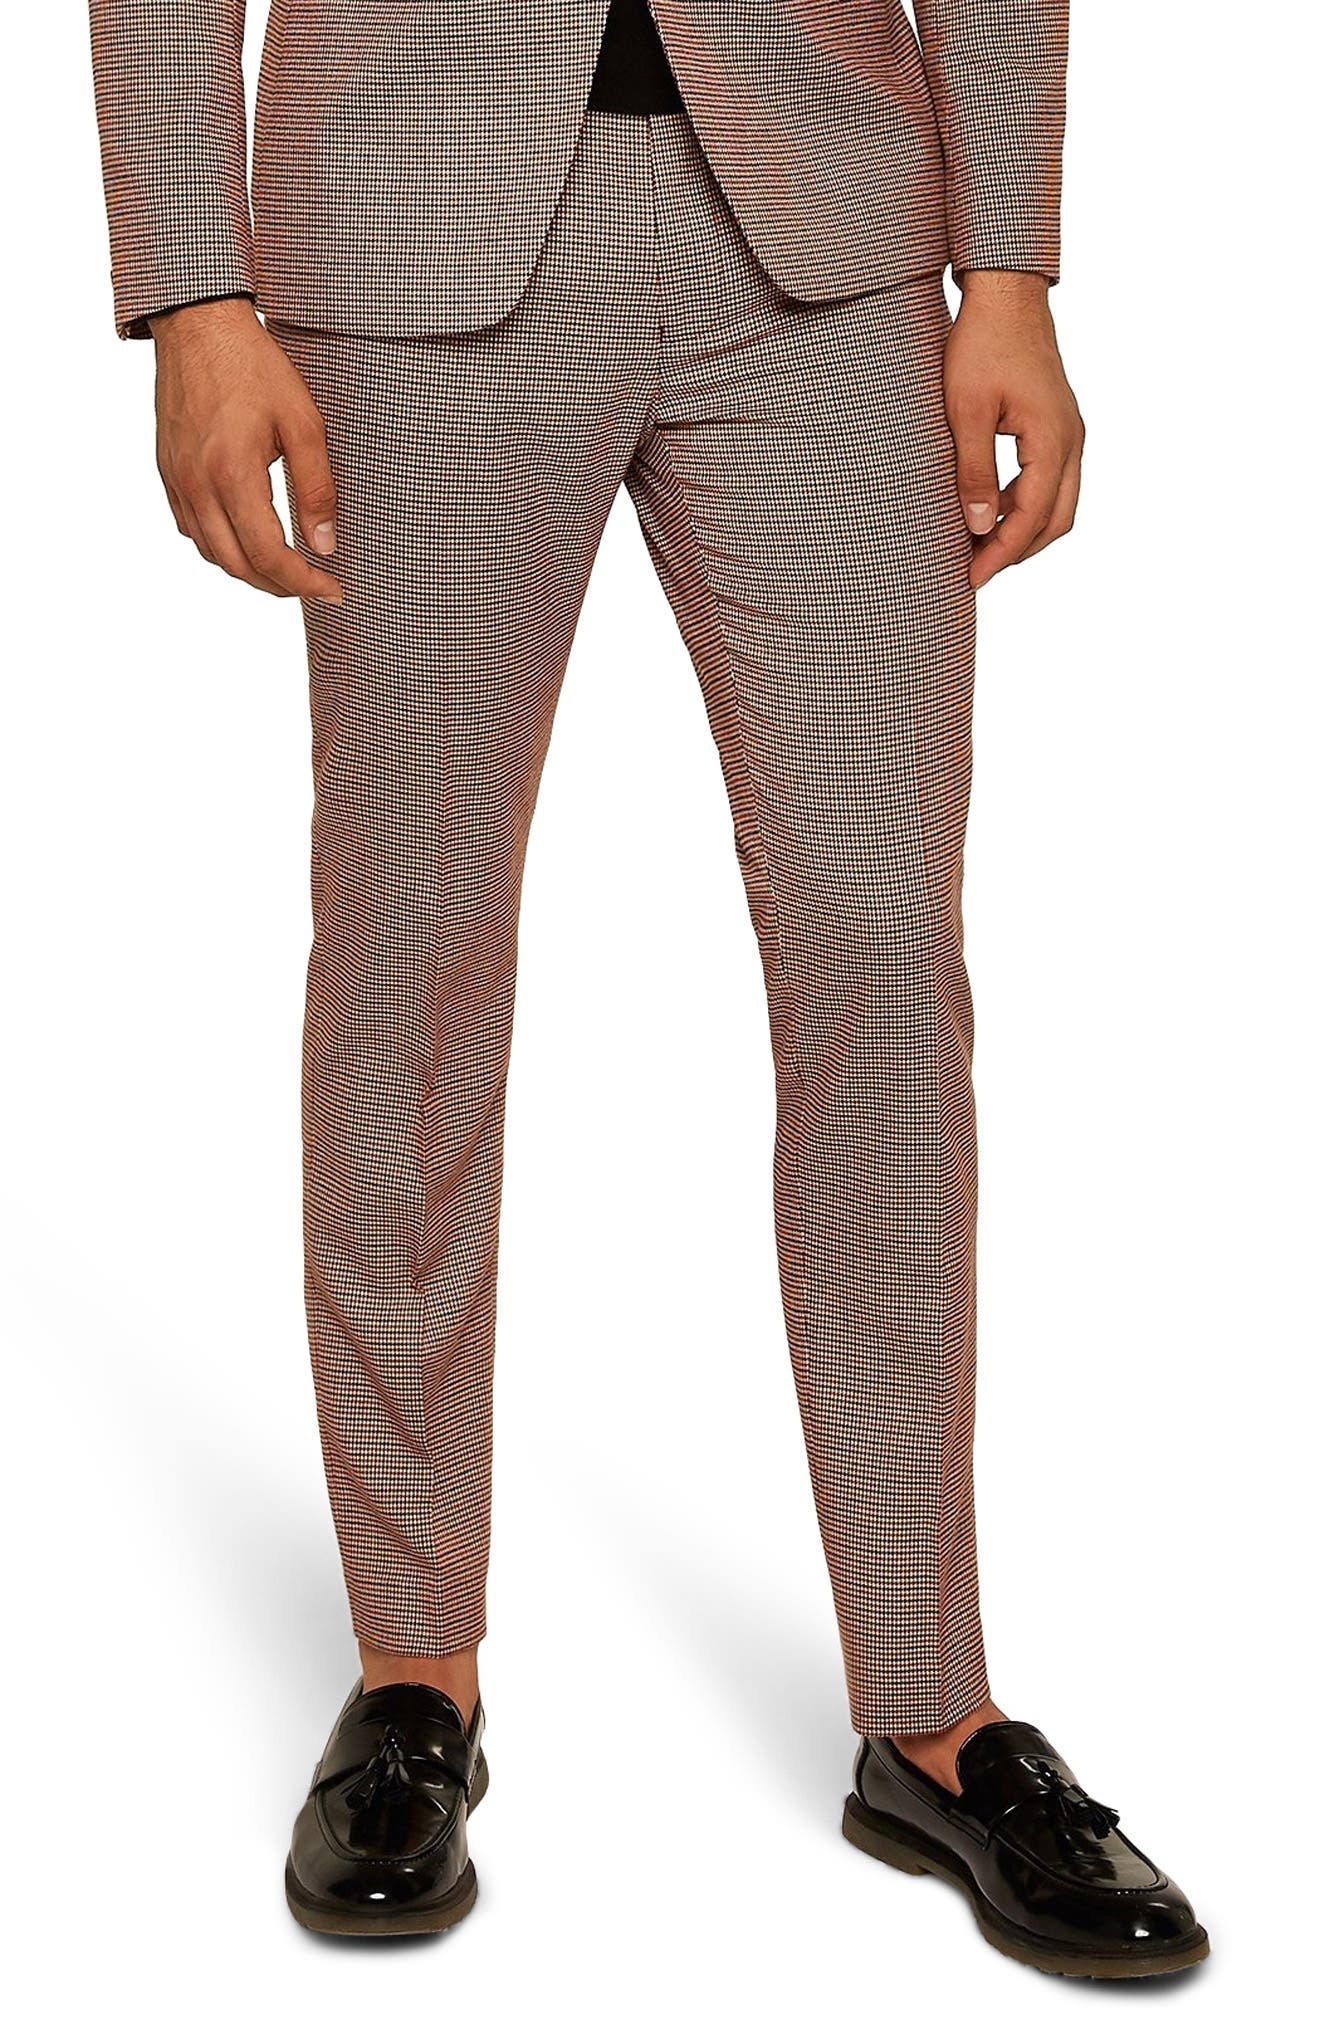 Houndstooth Skinny Fit Trousers,                         Main,                         color, STONE